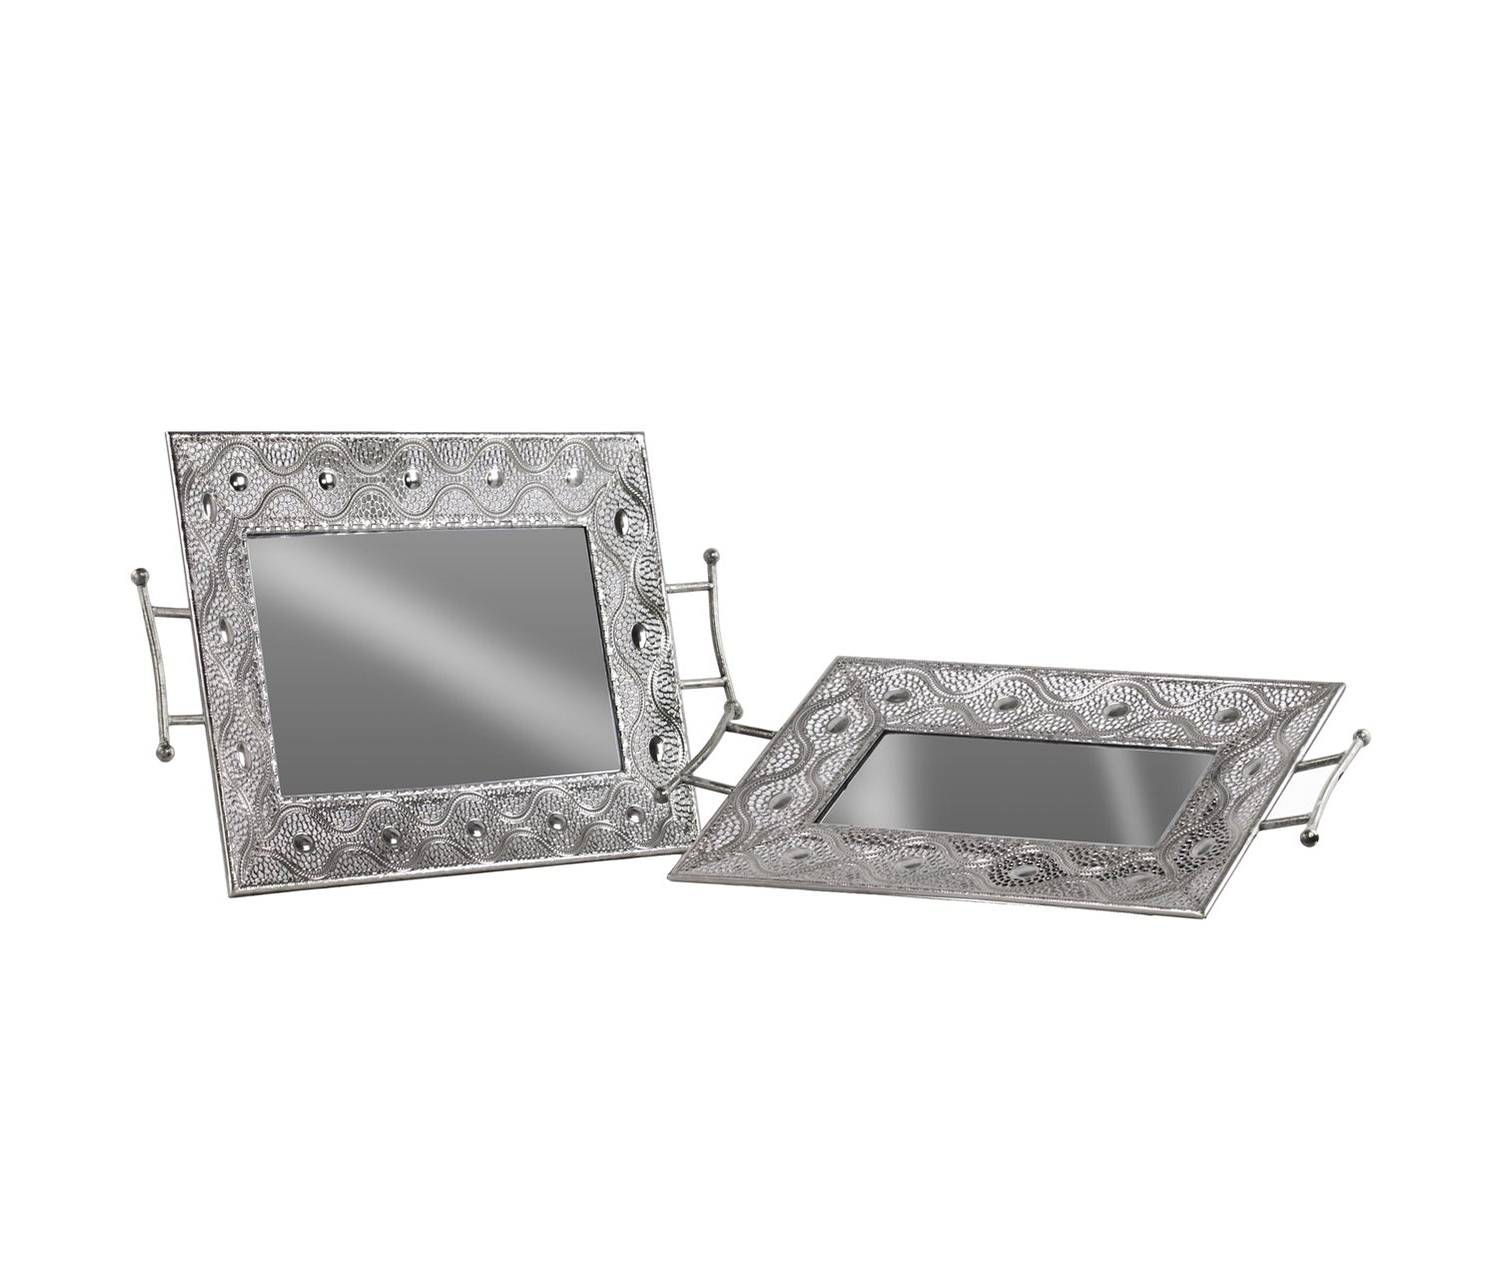 Metal Rectangular Tray with Mirror Surface, Silver